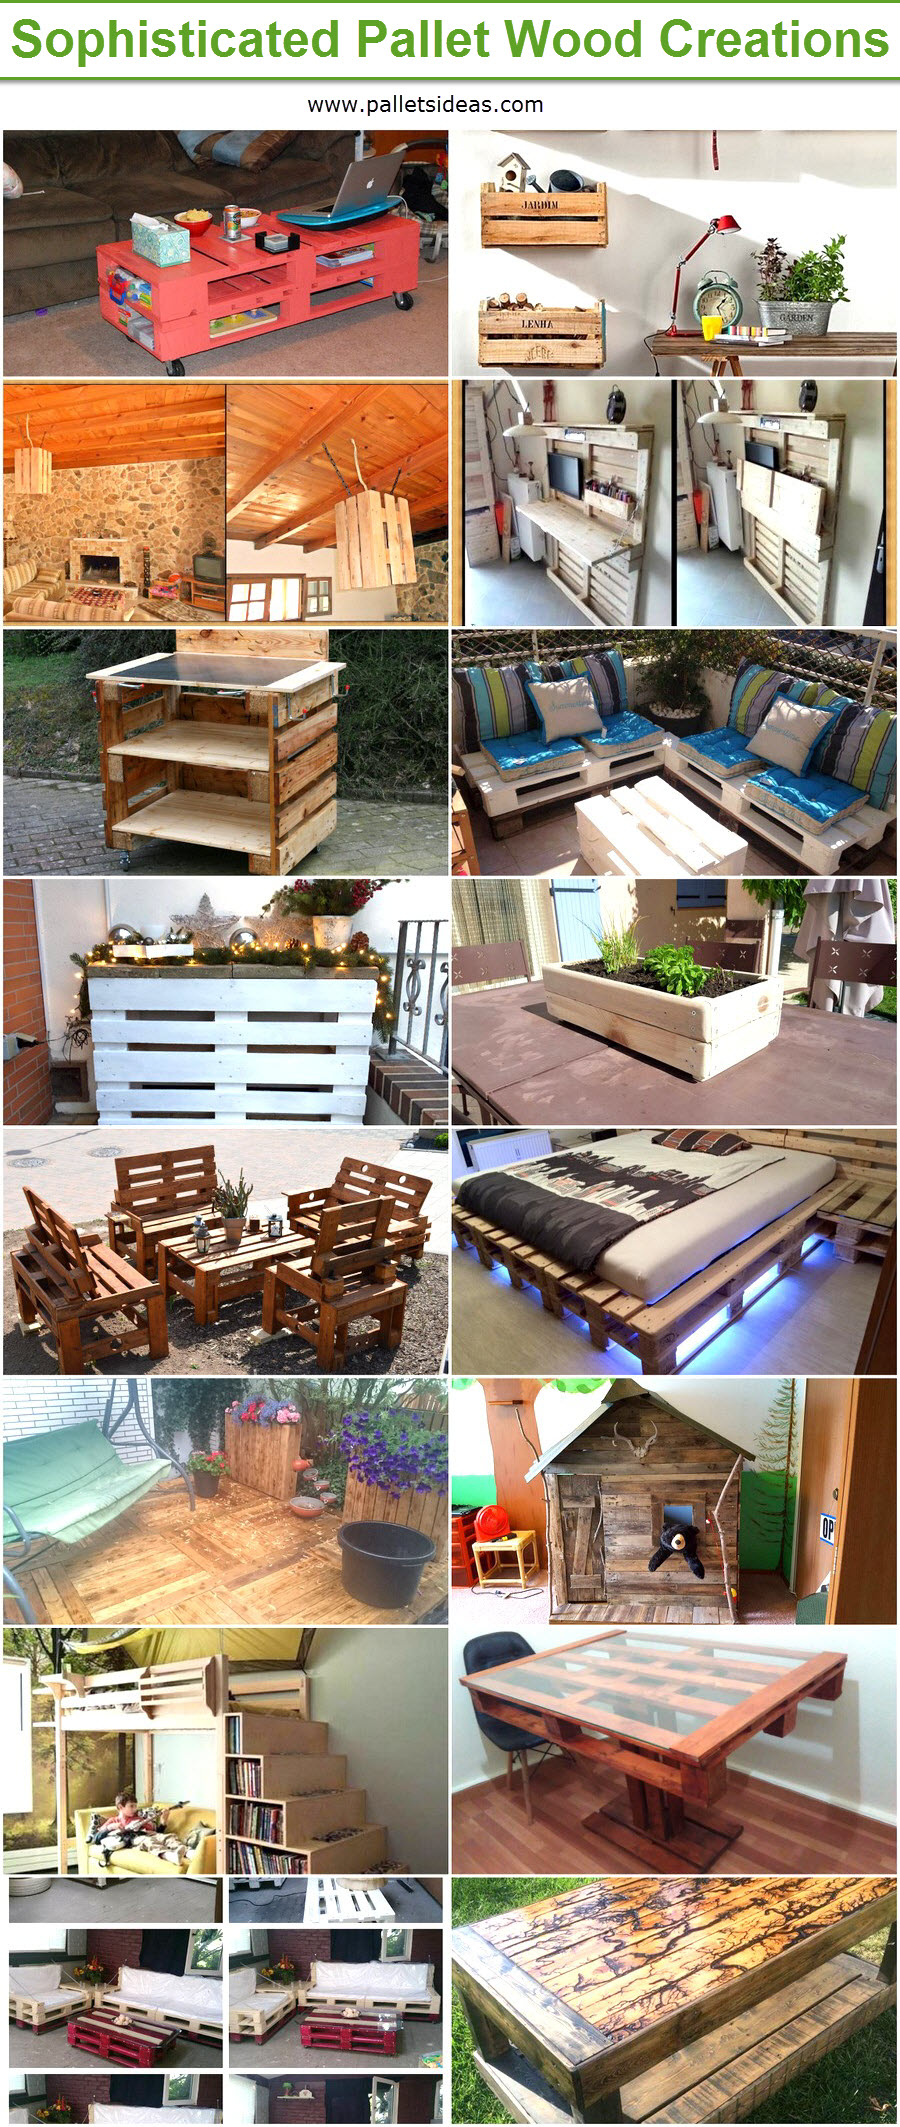 Sophisticated Pallet Wood Creations